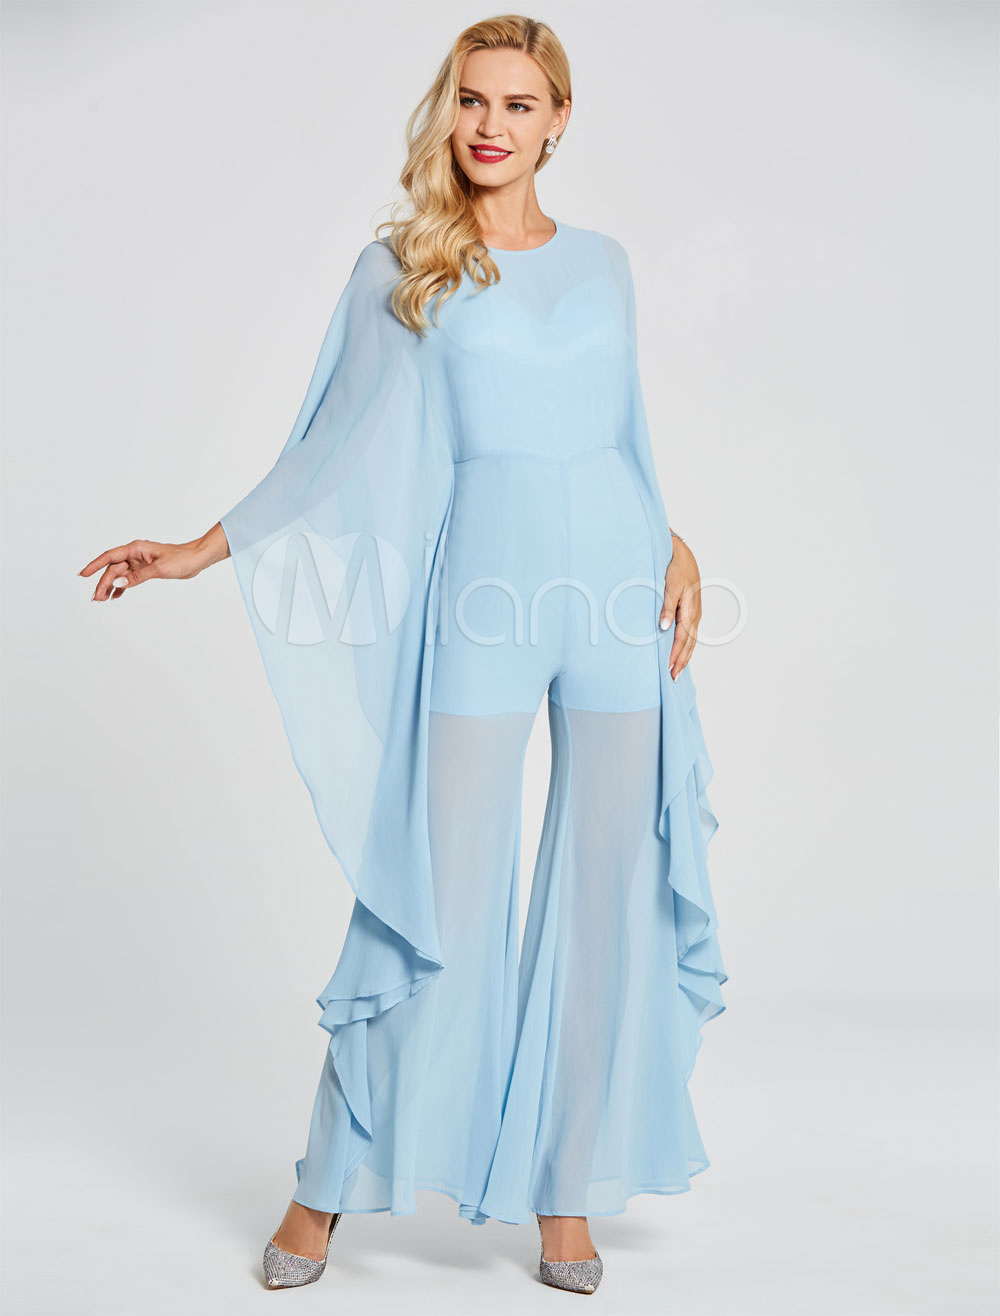 Buy Prom Dresses Jumpsuits Long Chiffon Pastel Blue Cascading Ruffles Long Sleeve Illusion Formal Party Dress for $79.19 in Milanoo store